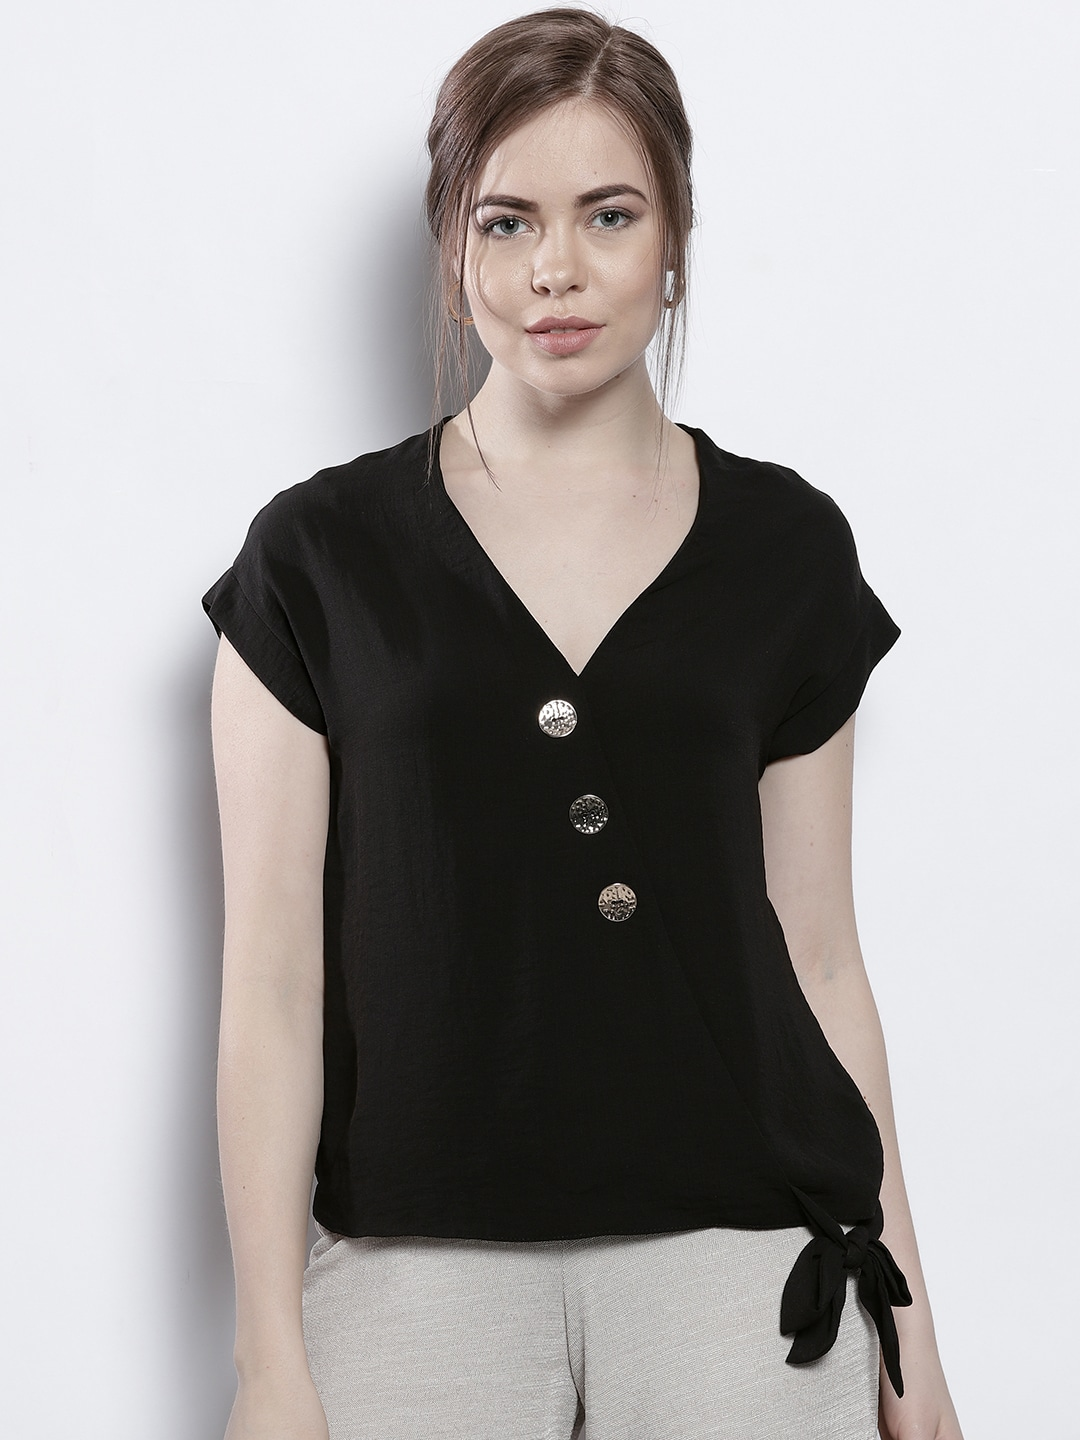 ce8c0875fee Wrap Tops - Buy Wrap Tops online in India